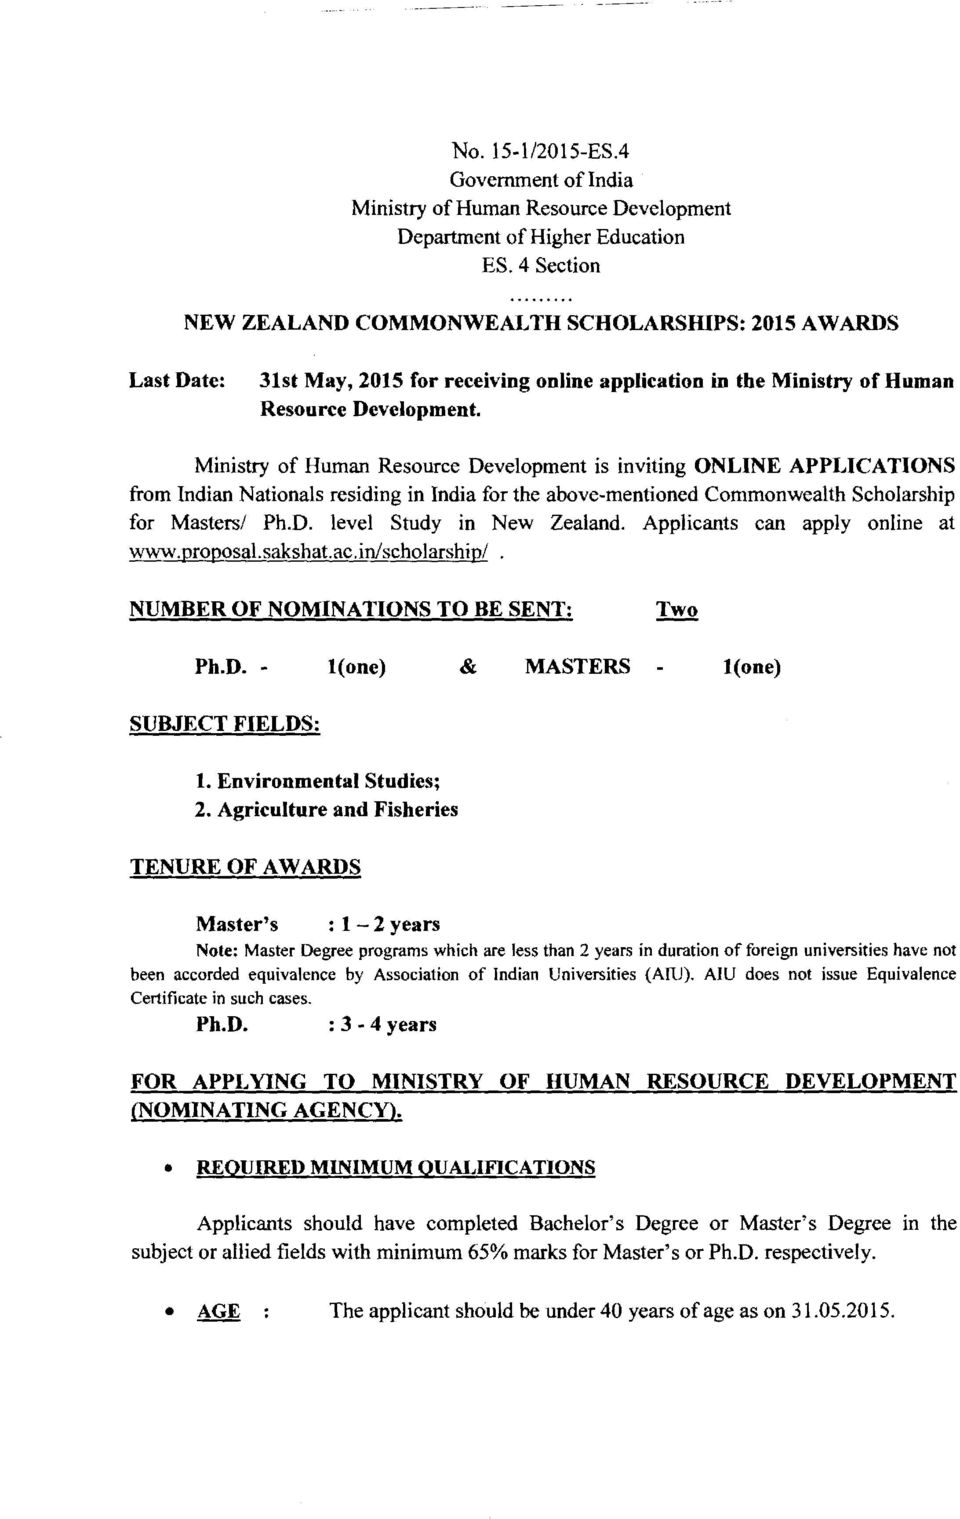 Ministry of Human Resource Development is inviting ONLINE APPLICATIONS from Indian Nationals residing in India for the above-mentioned Commonwealth Scholarship for Masters/ Ph.D. level Study in New Zealand.